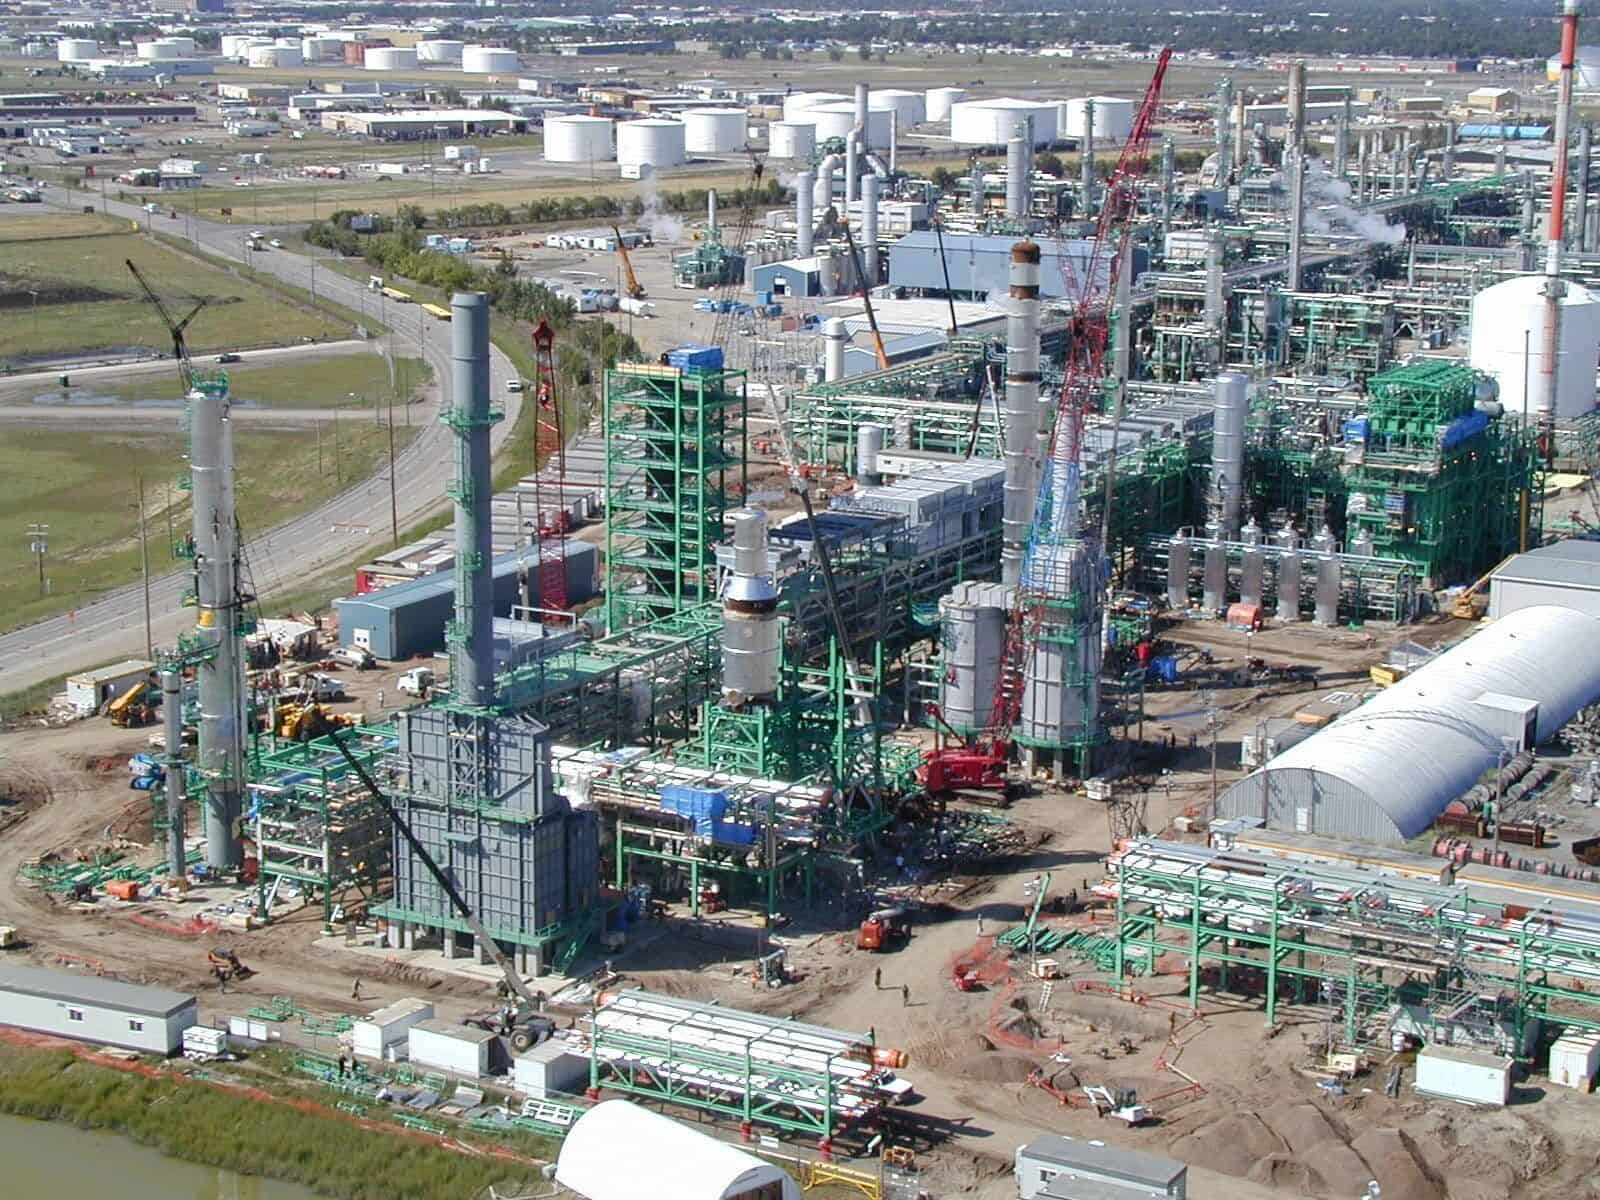 Co-op Refinery - aerial shot